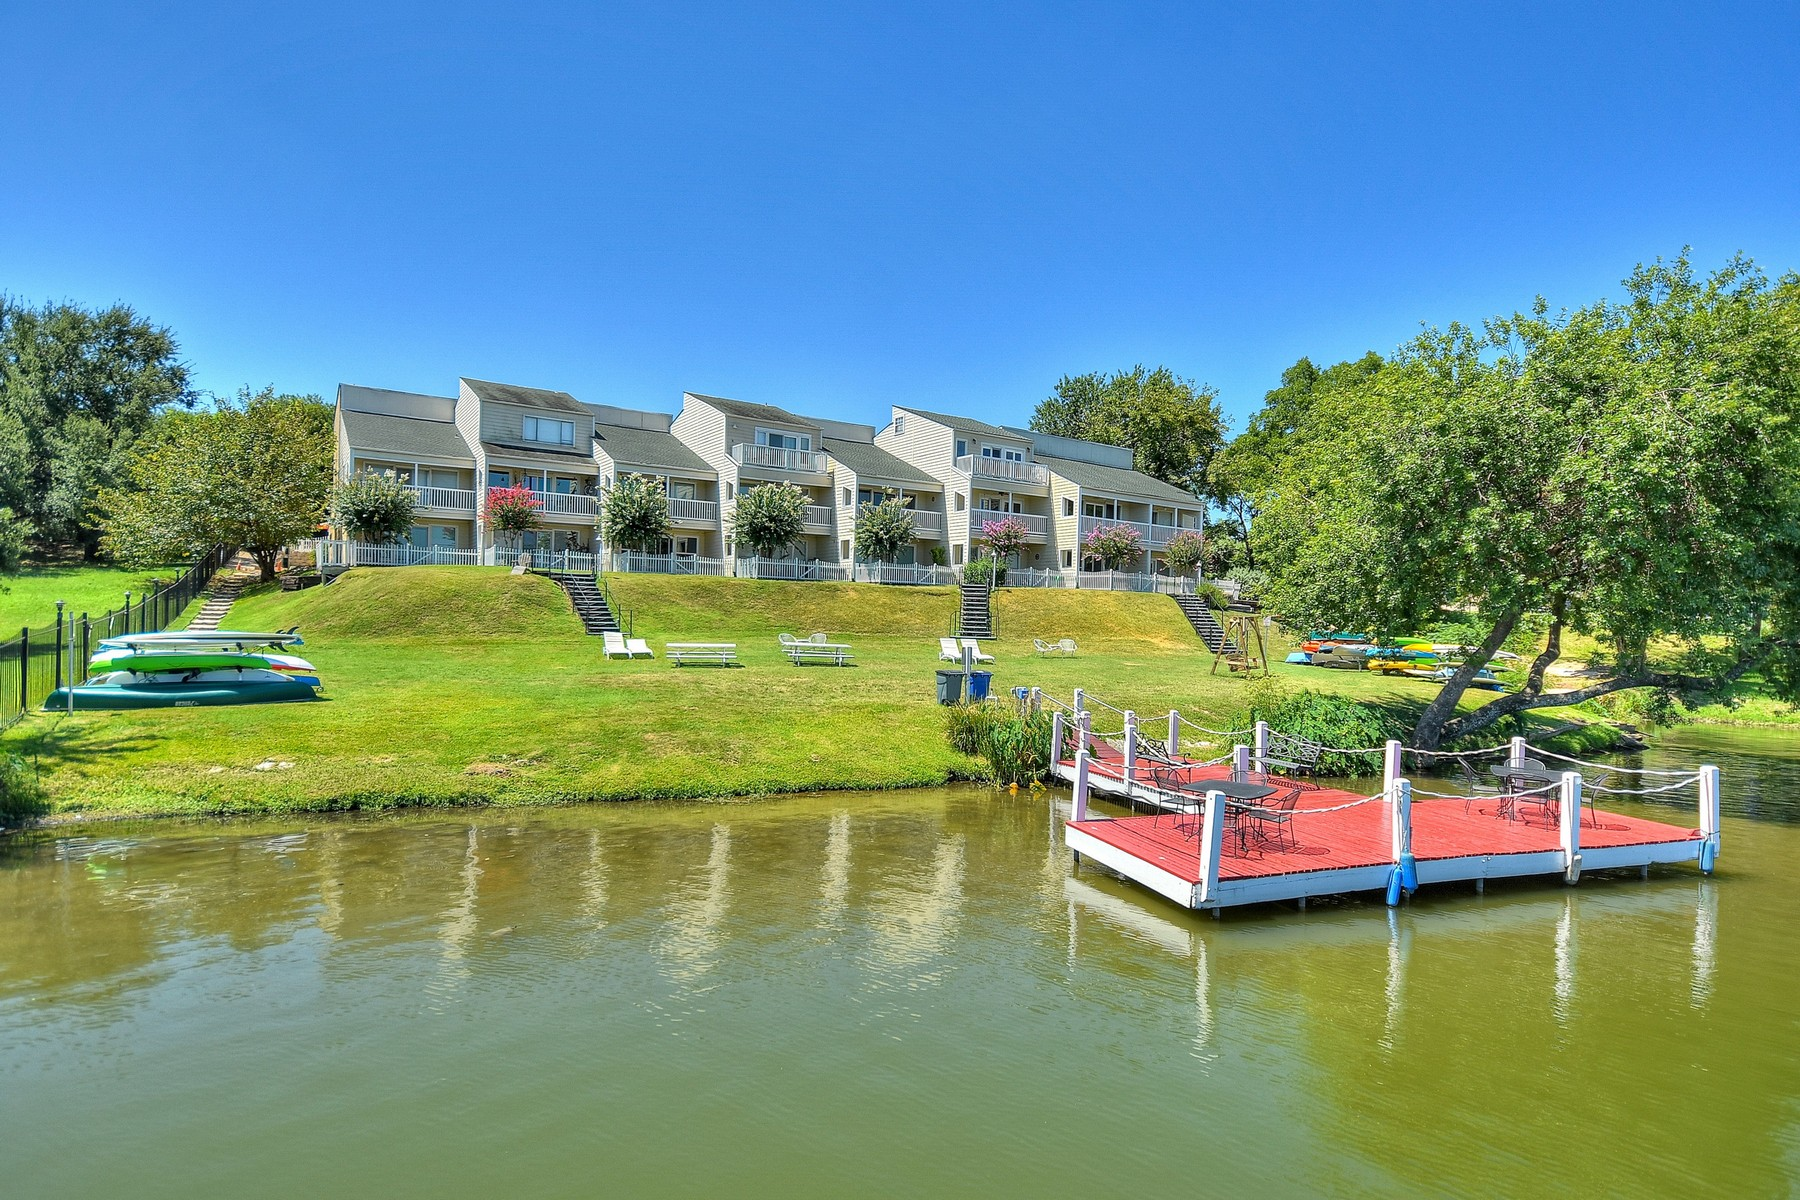 Additional photo for property listing at Amazing Waterfront Condo 5 minutes to Downtown! 1818 Lakeshore Dr 16 Austin, Texas 78741 Estados Unidos